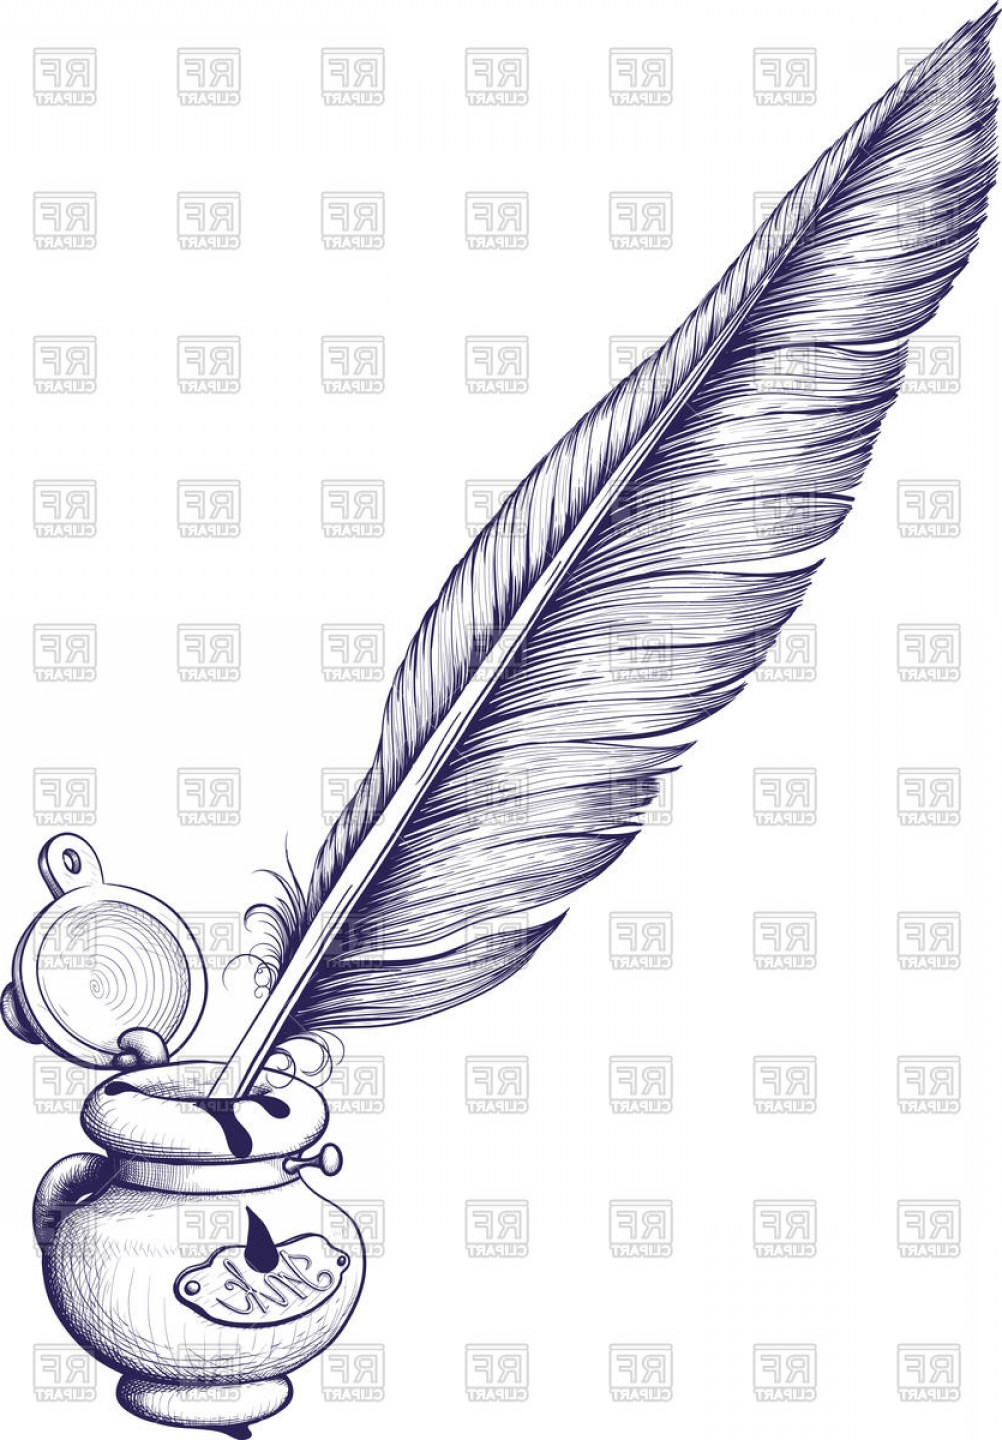 Quill Pen Vector: Inkwell And Antique Quill Pen For Writing Vector Clipart